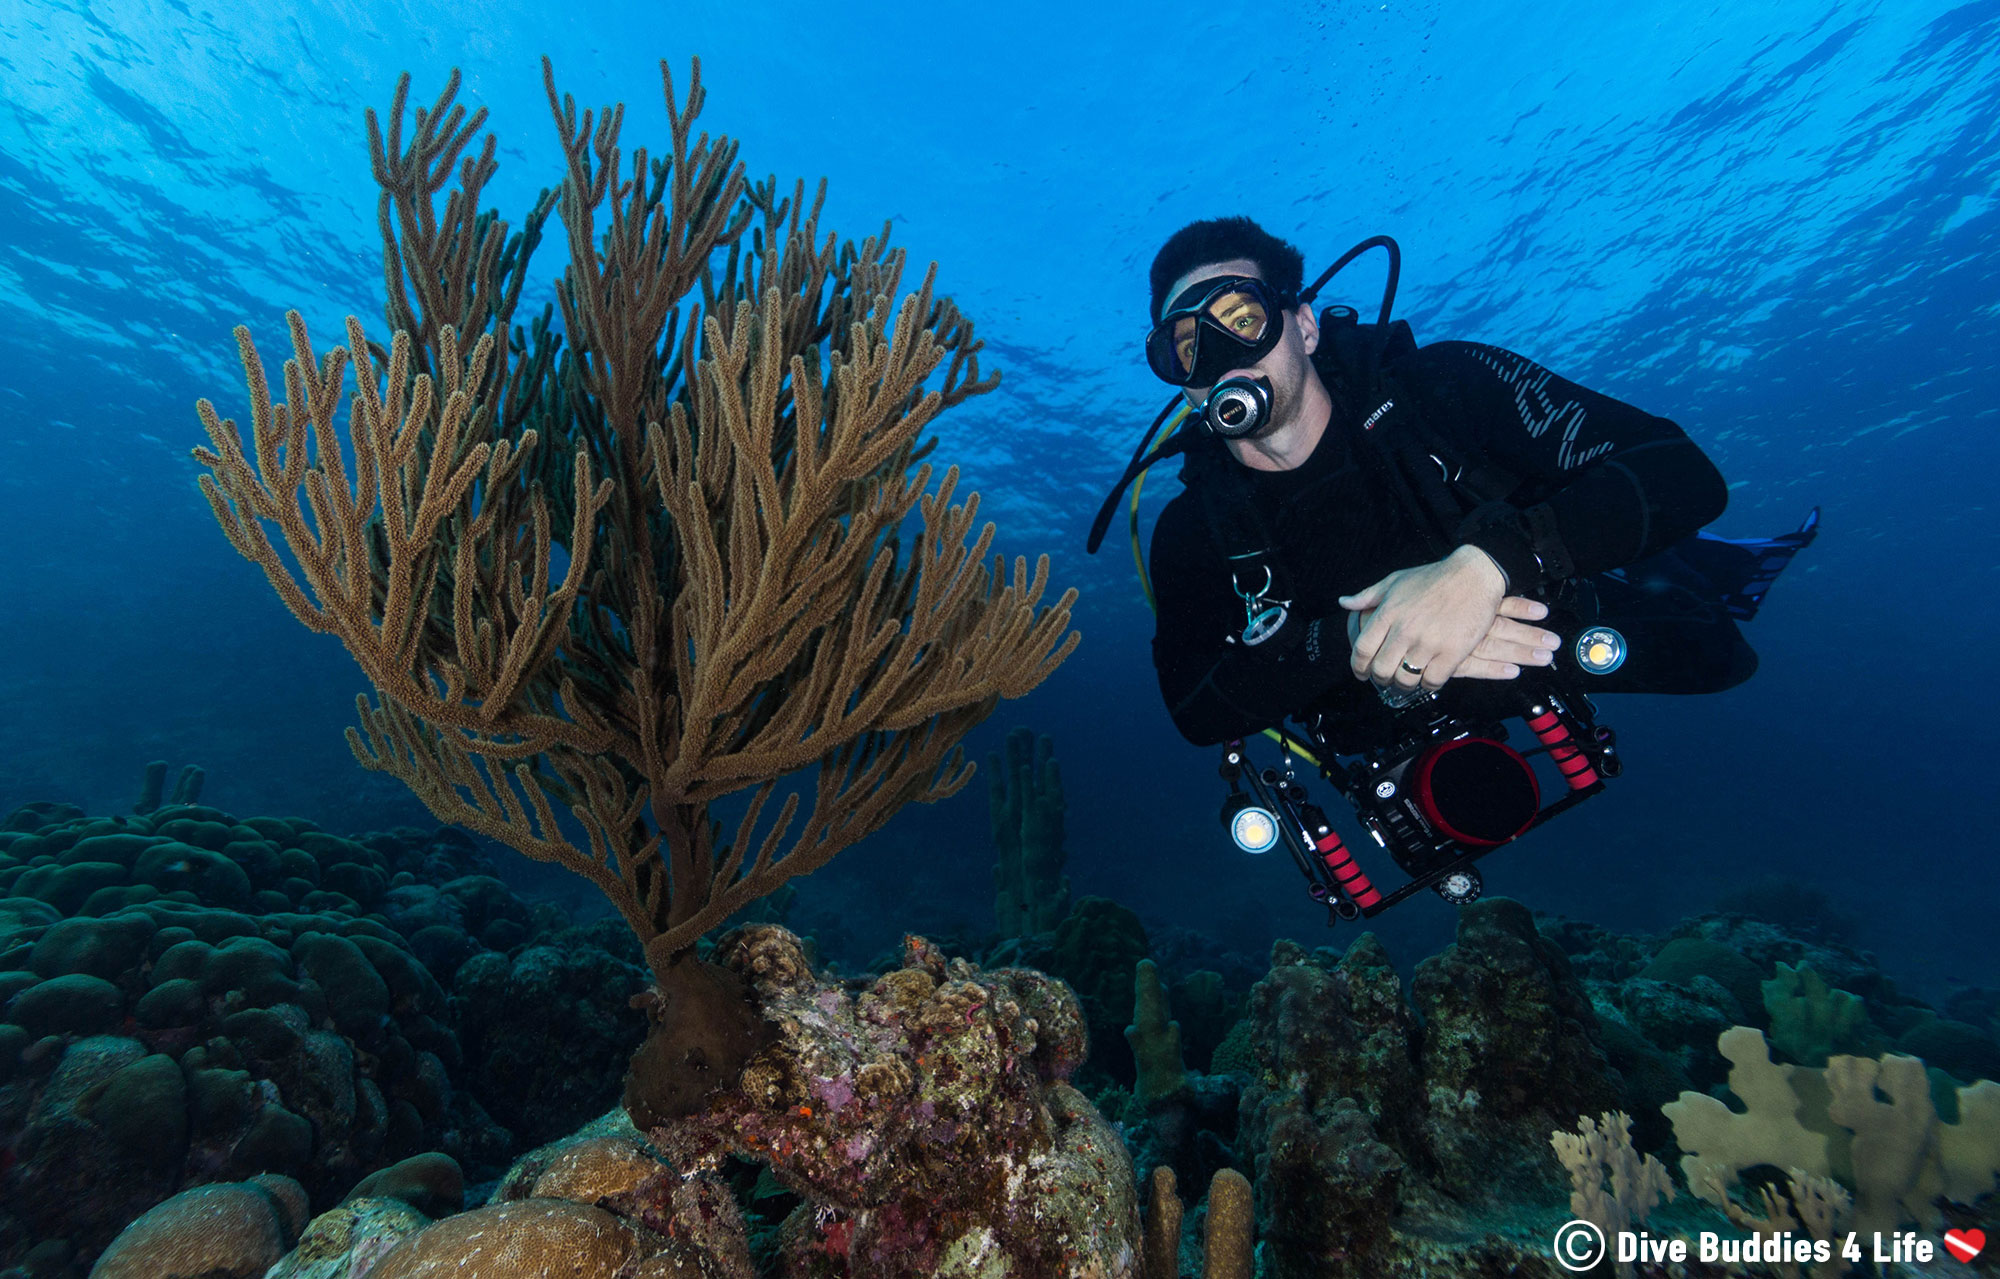 Scuba Diver Joey And A Piece Of Soft Coral On The Reef Of Bonaire, Dutch Caribbean